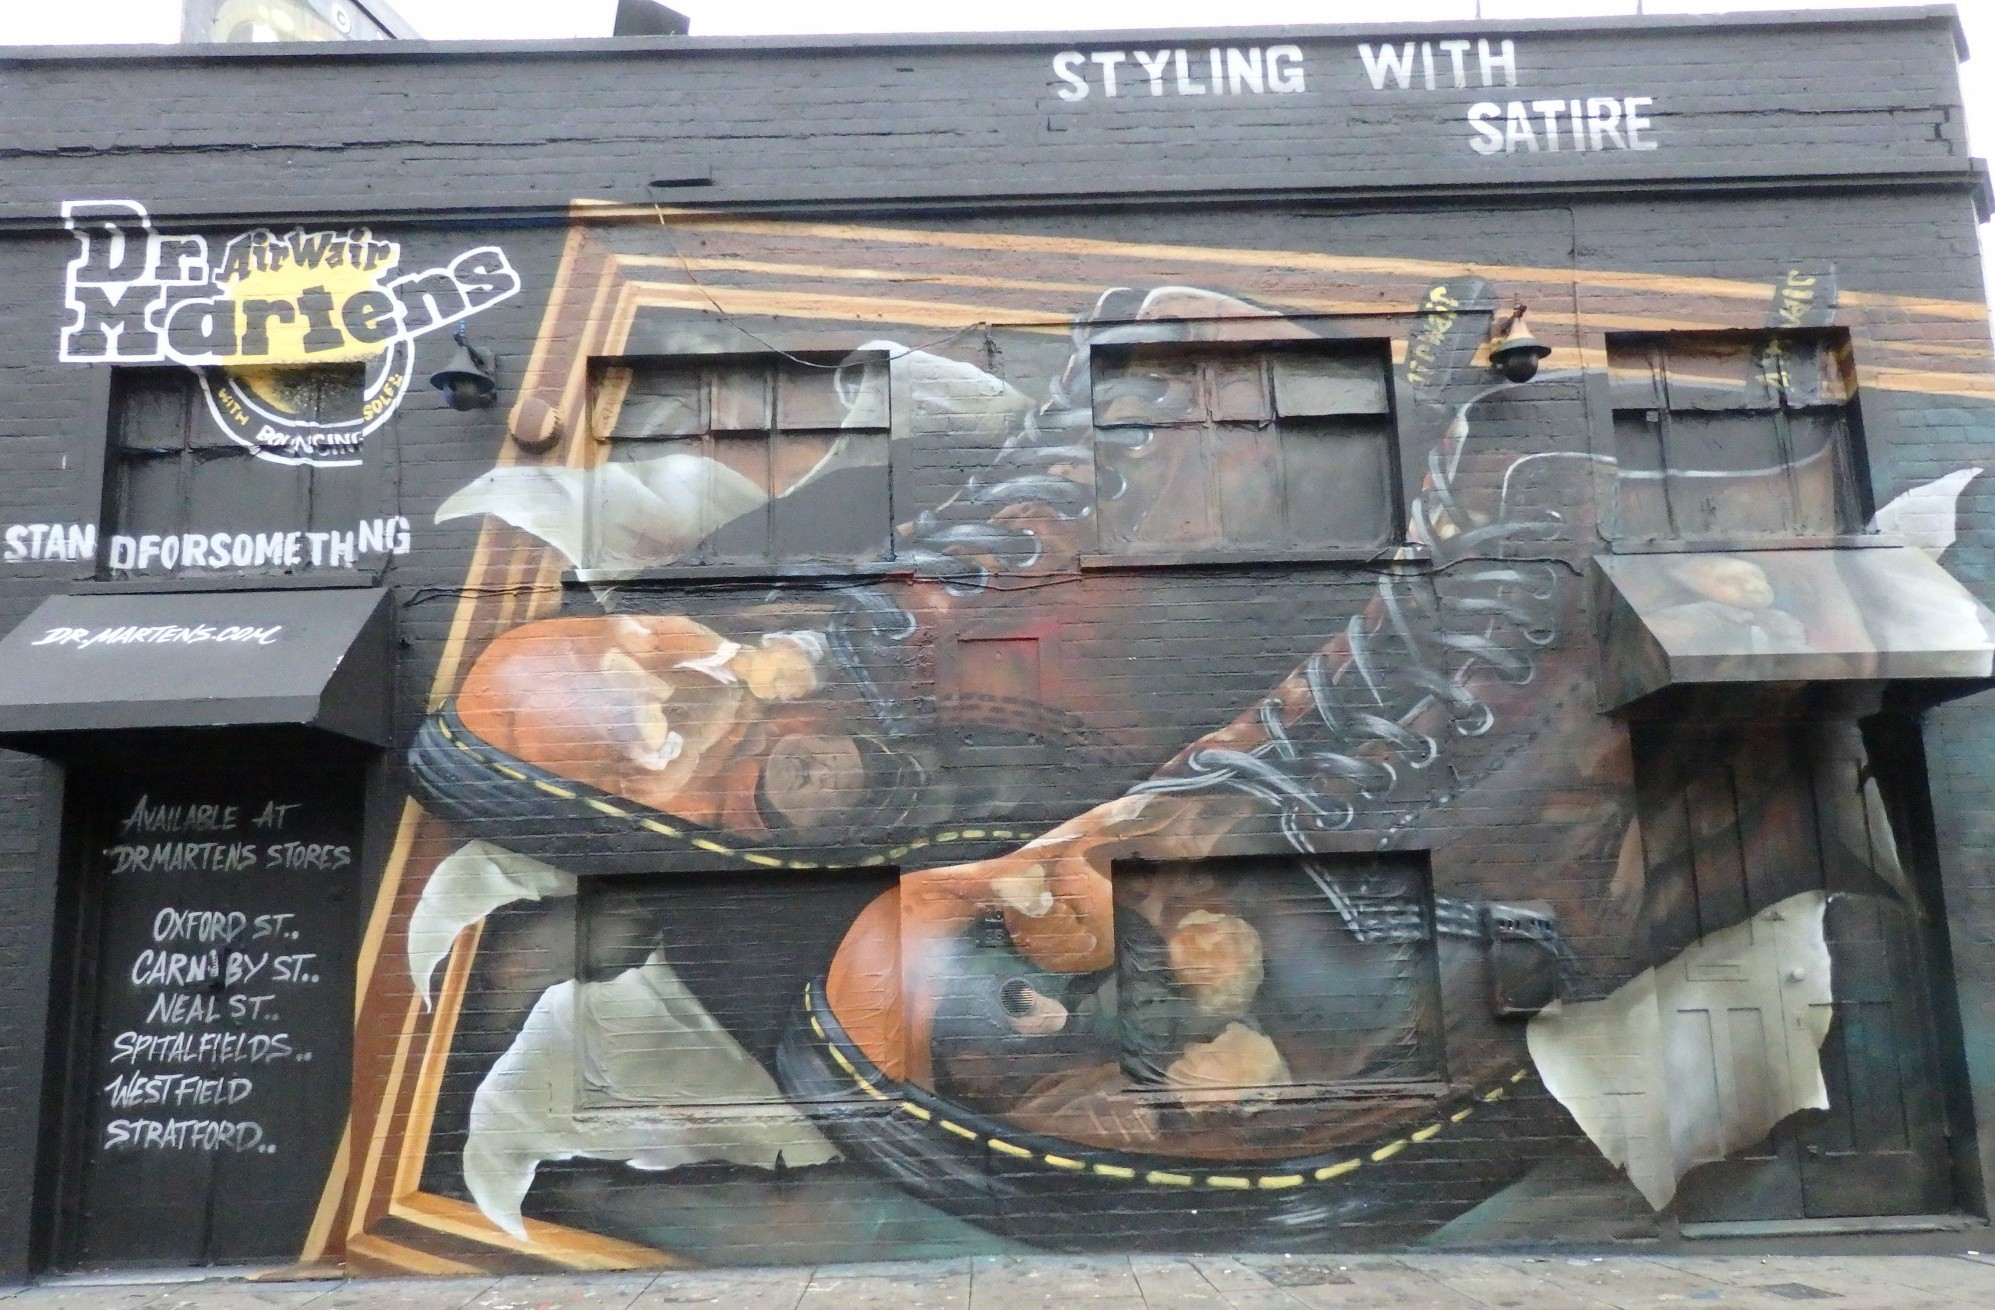 a Doc Martens store in Shoreditch, London